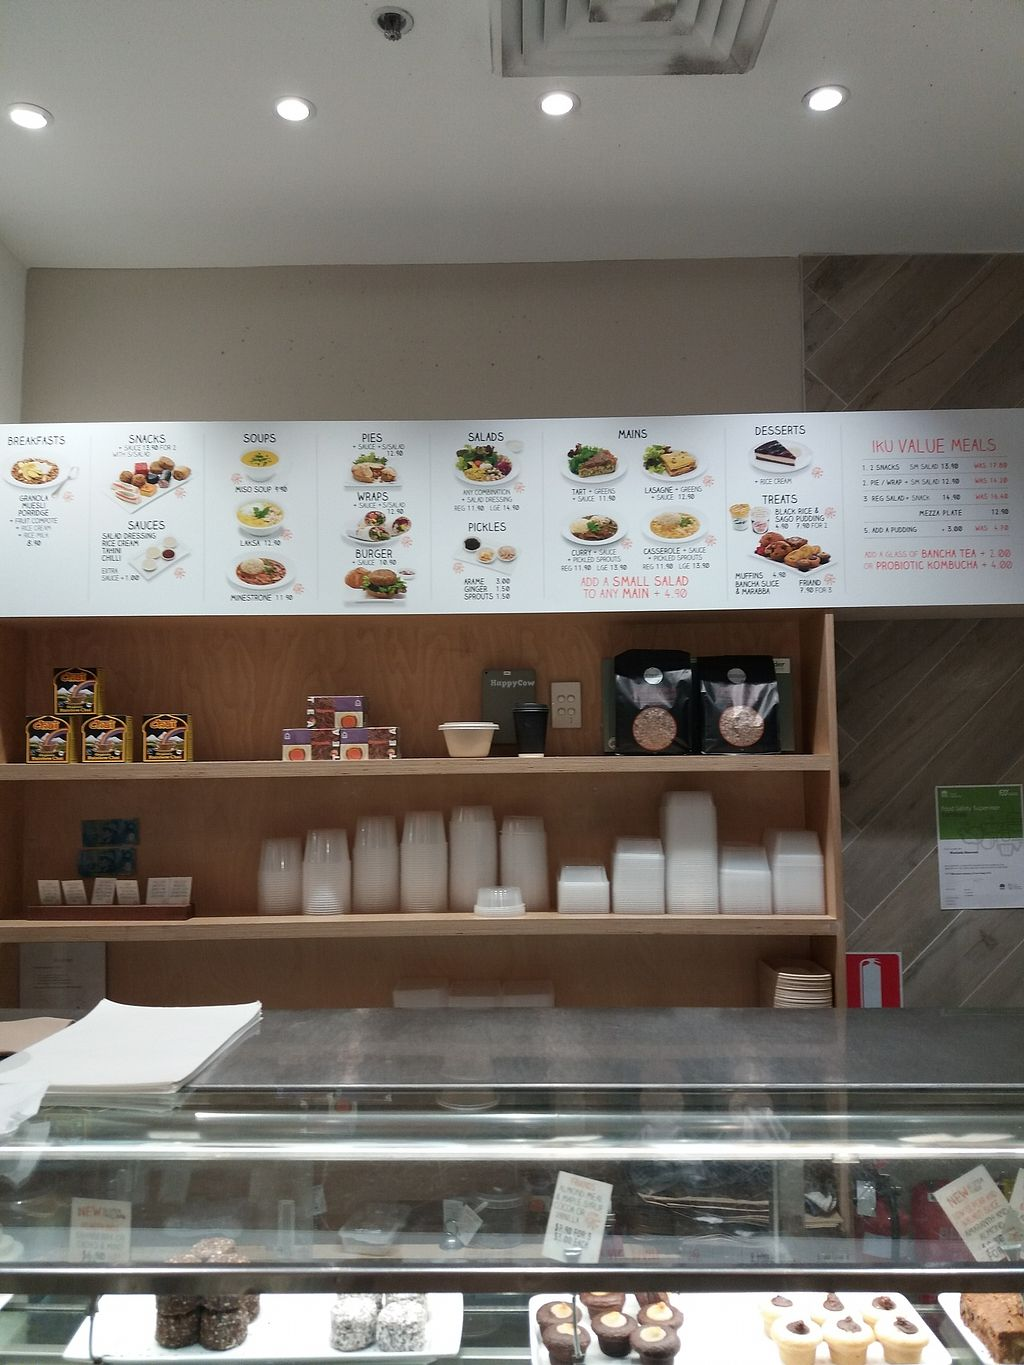 """Photo of Iku Wholefood Kitchen - Greenwood Plaza  by <a href=""""/members/profile/veganvirtues"""">veganvirtues</a> <br/>Iku selection of dishes <br/> September 20, 2017  - <a href='/contact/abuse/image/23181/306359'>Report</a>"""